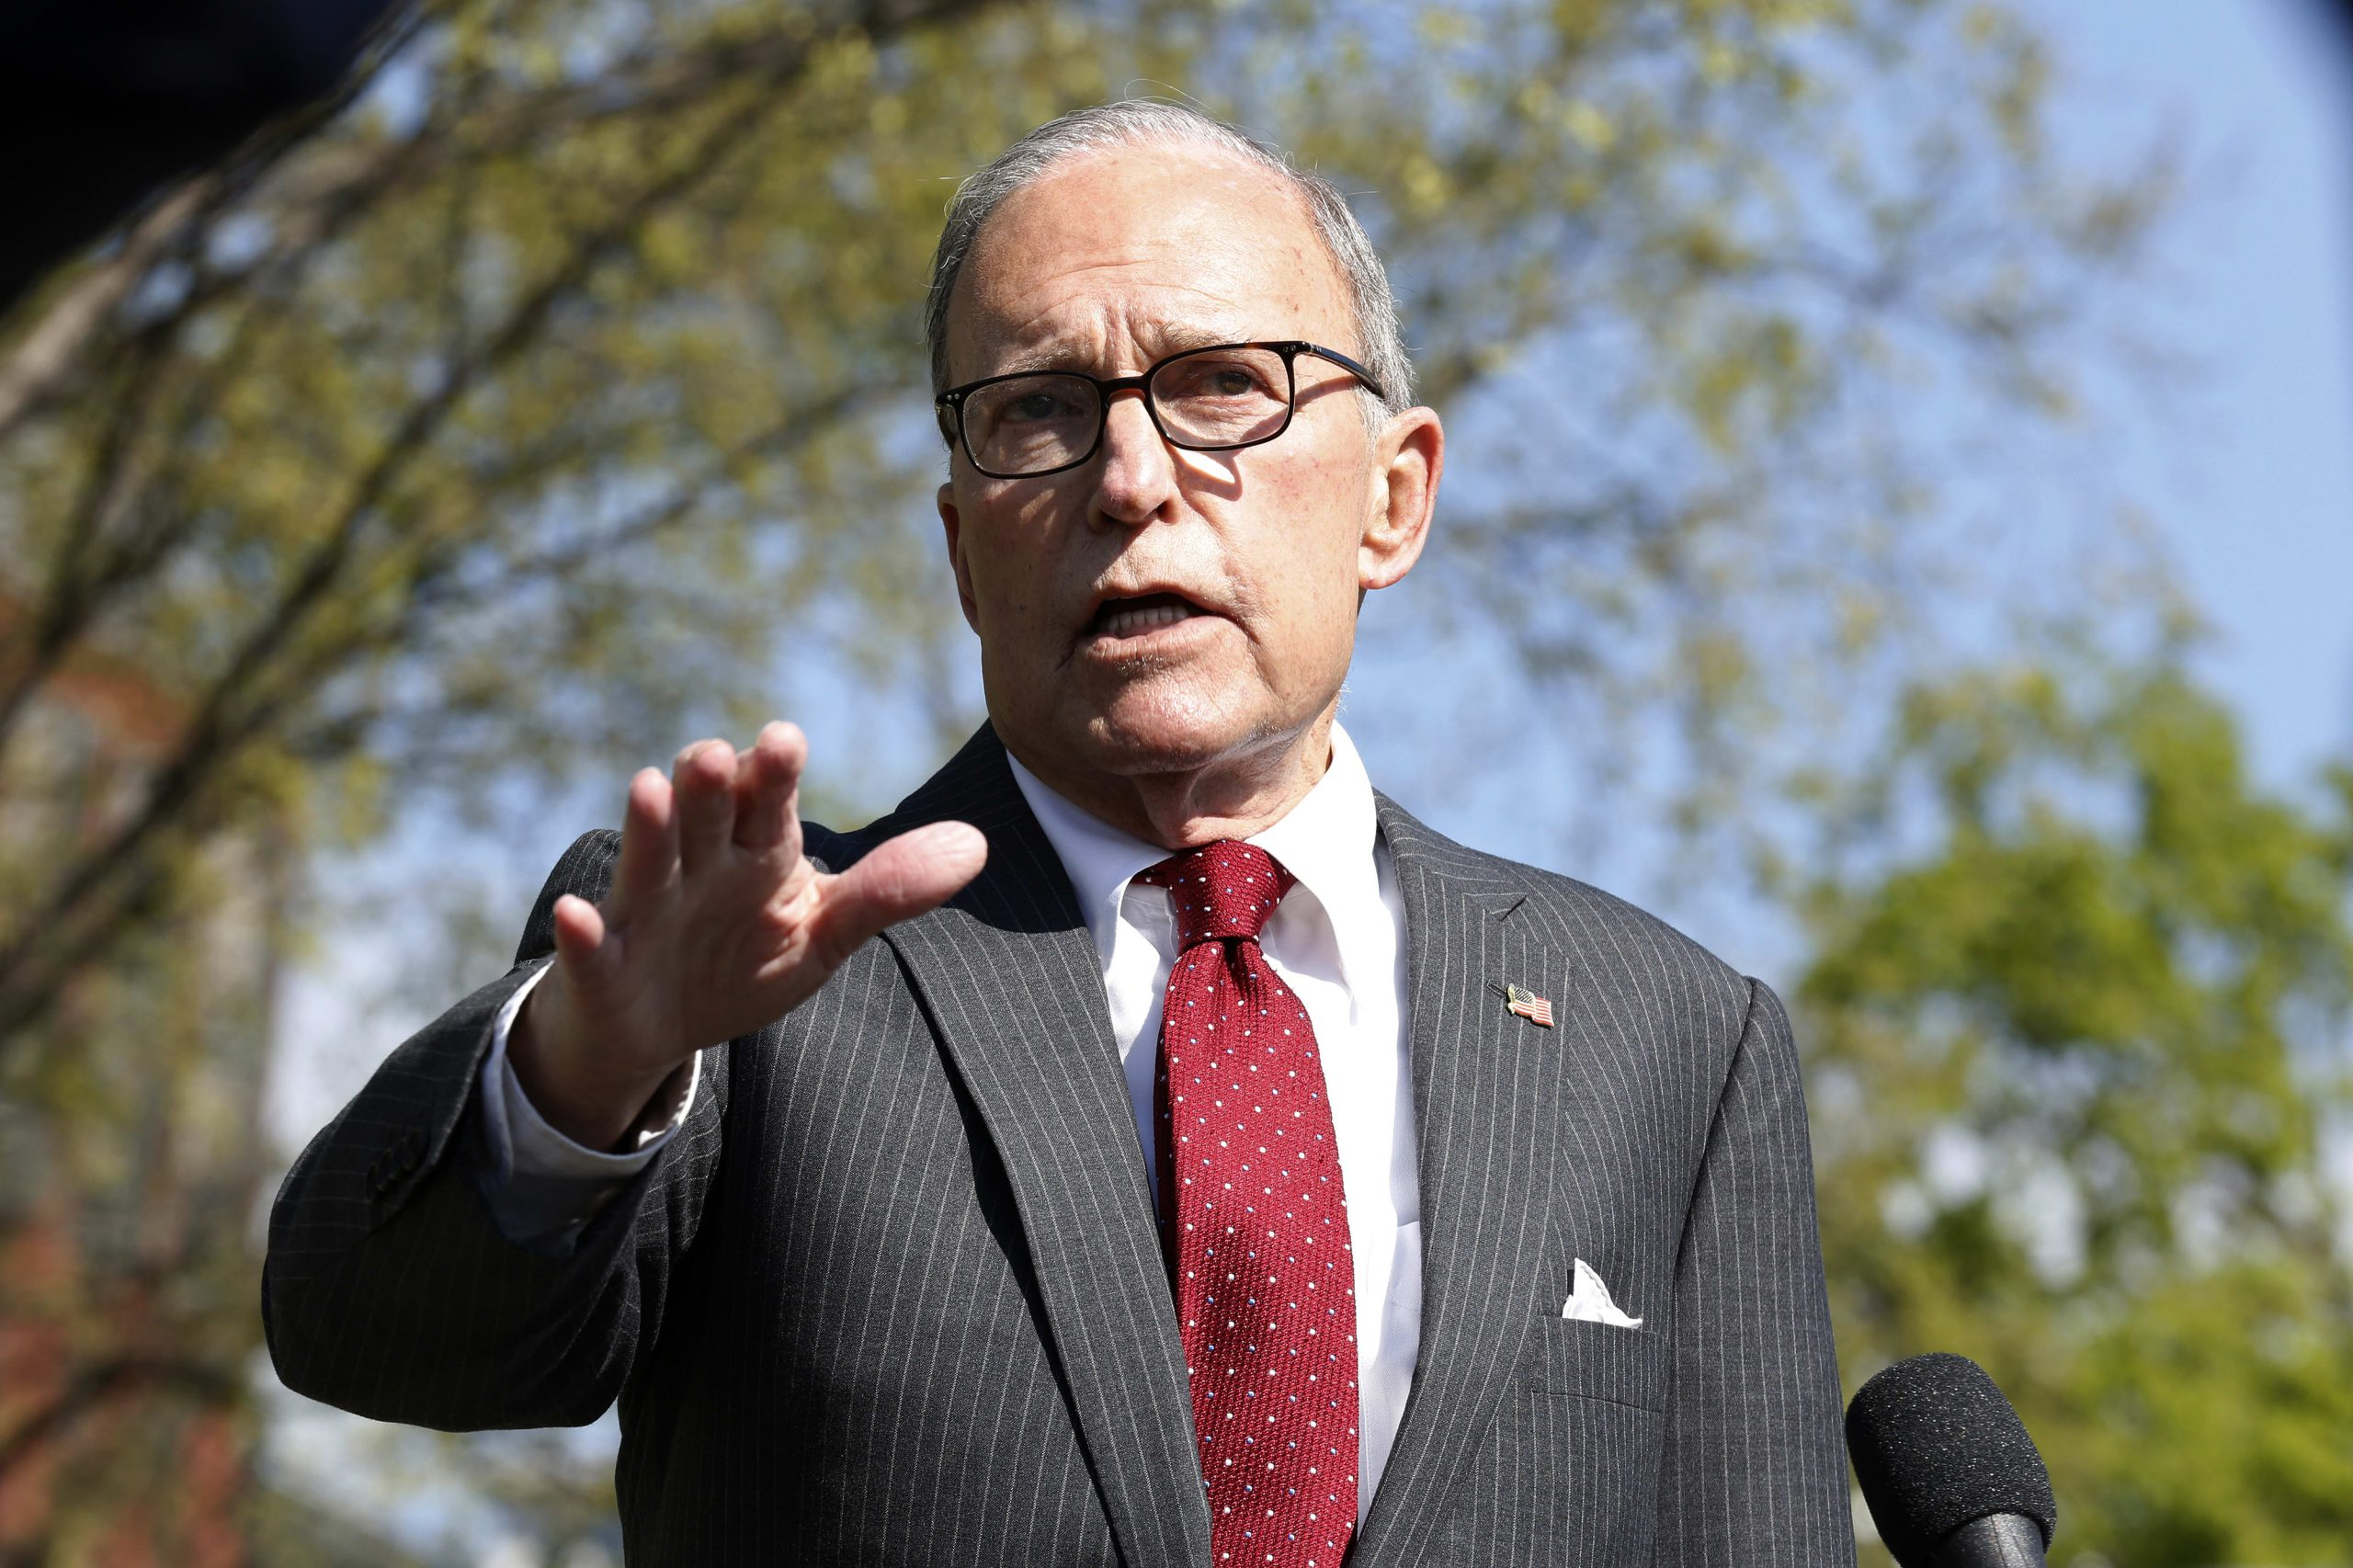 Larry Kudlow says oil should rebound as the economy starts to reopen